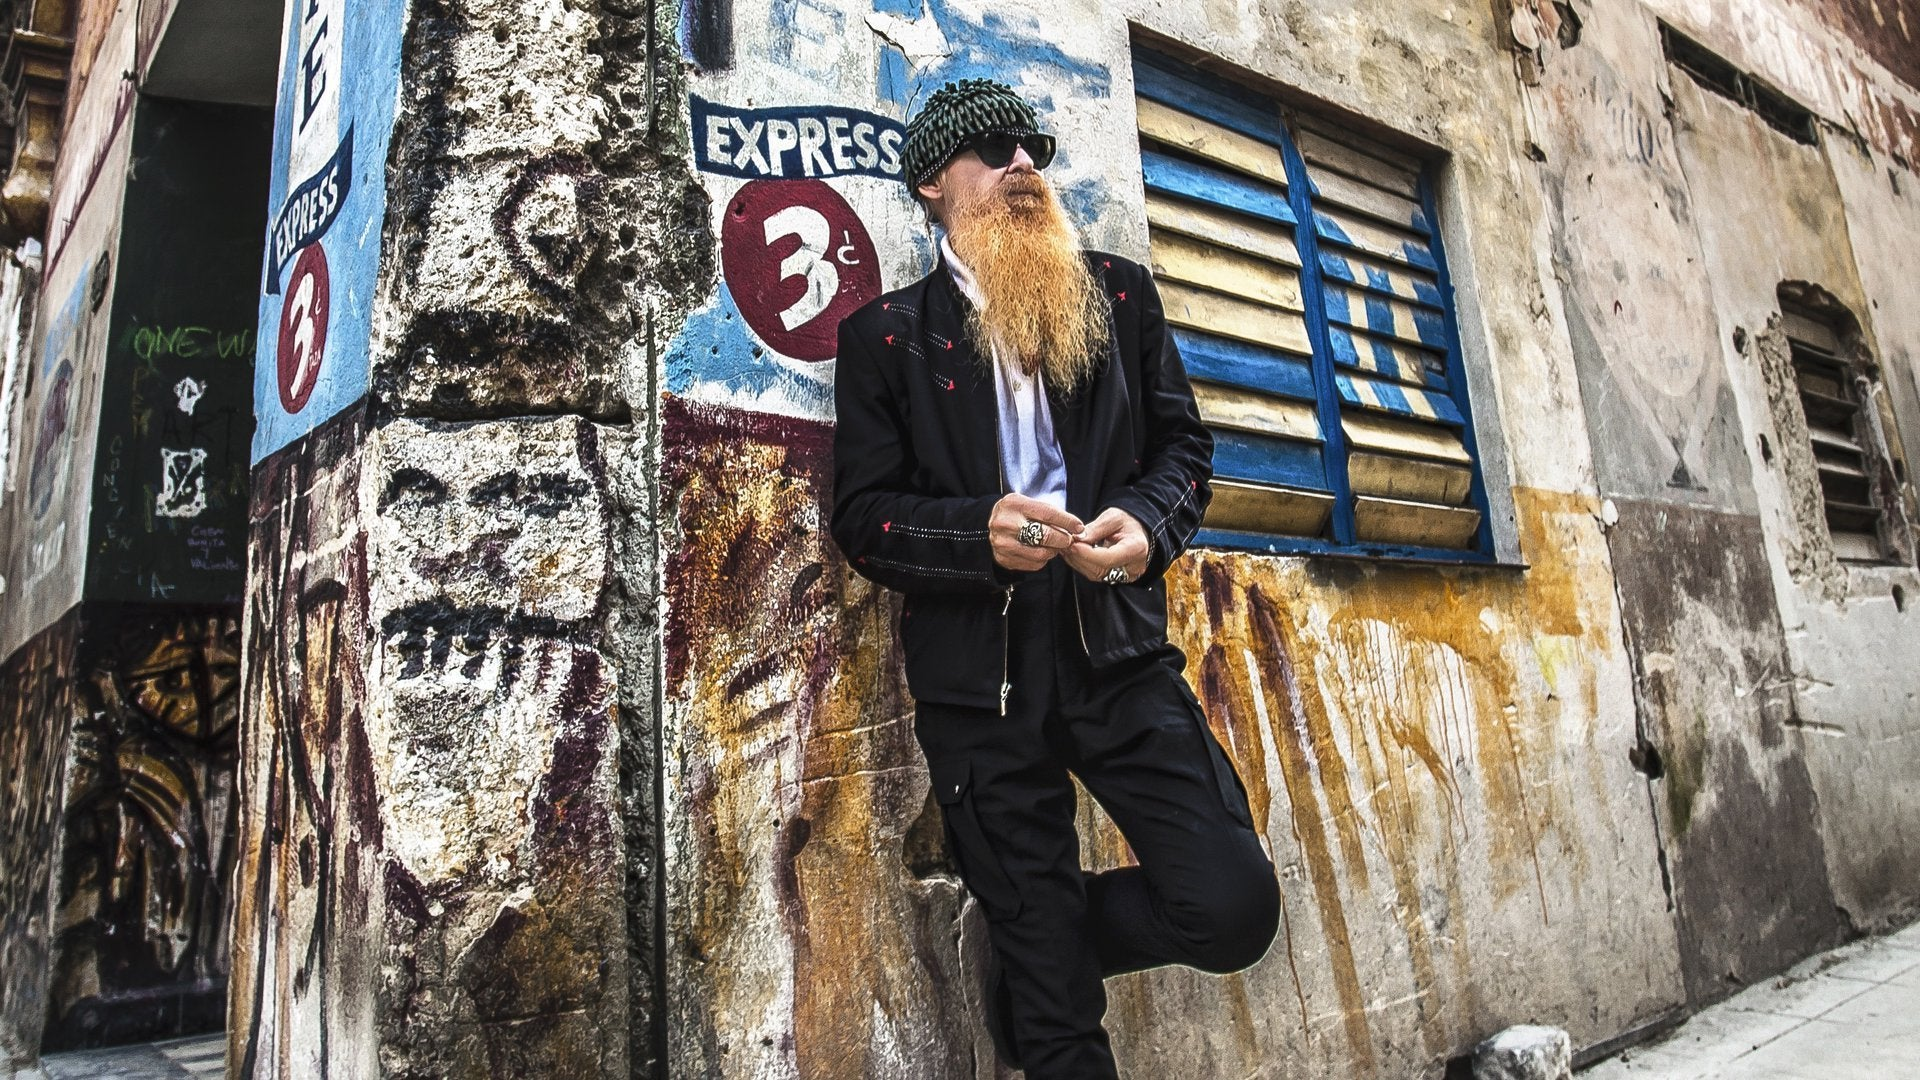 ZZ Top's Billy Gibbons and the BFG's Go to Cuba